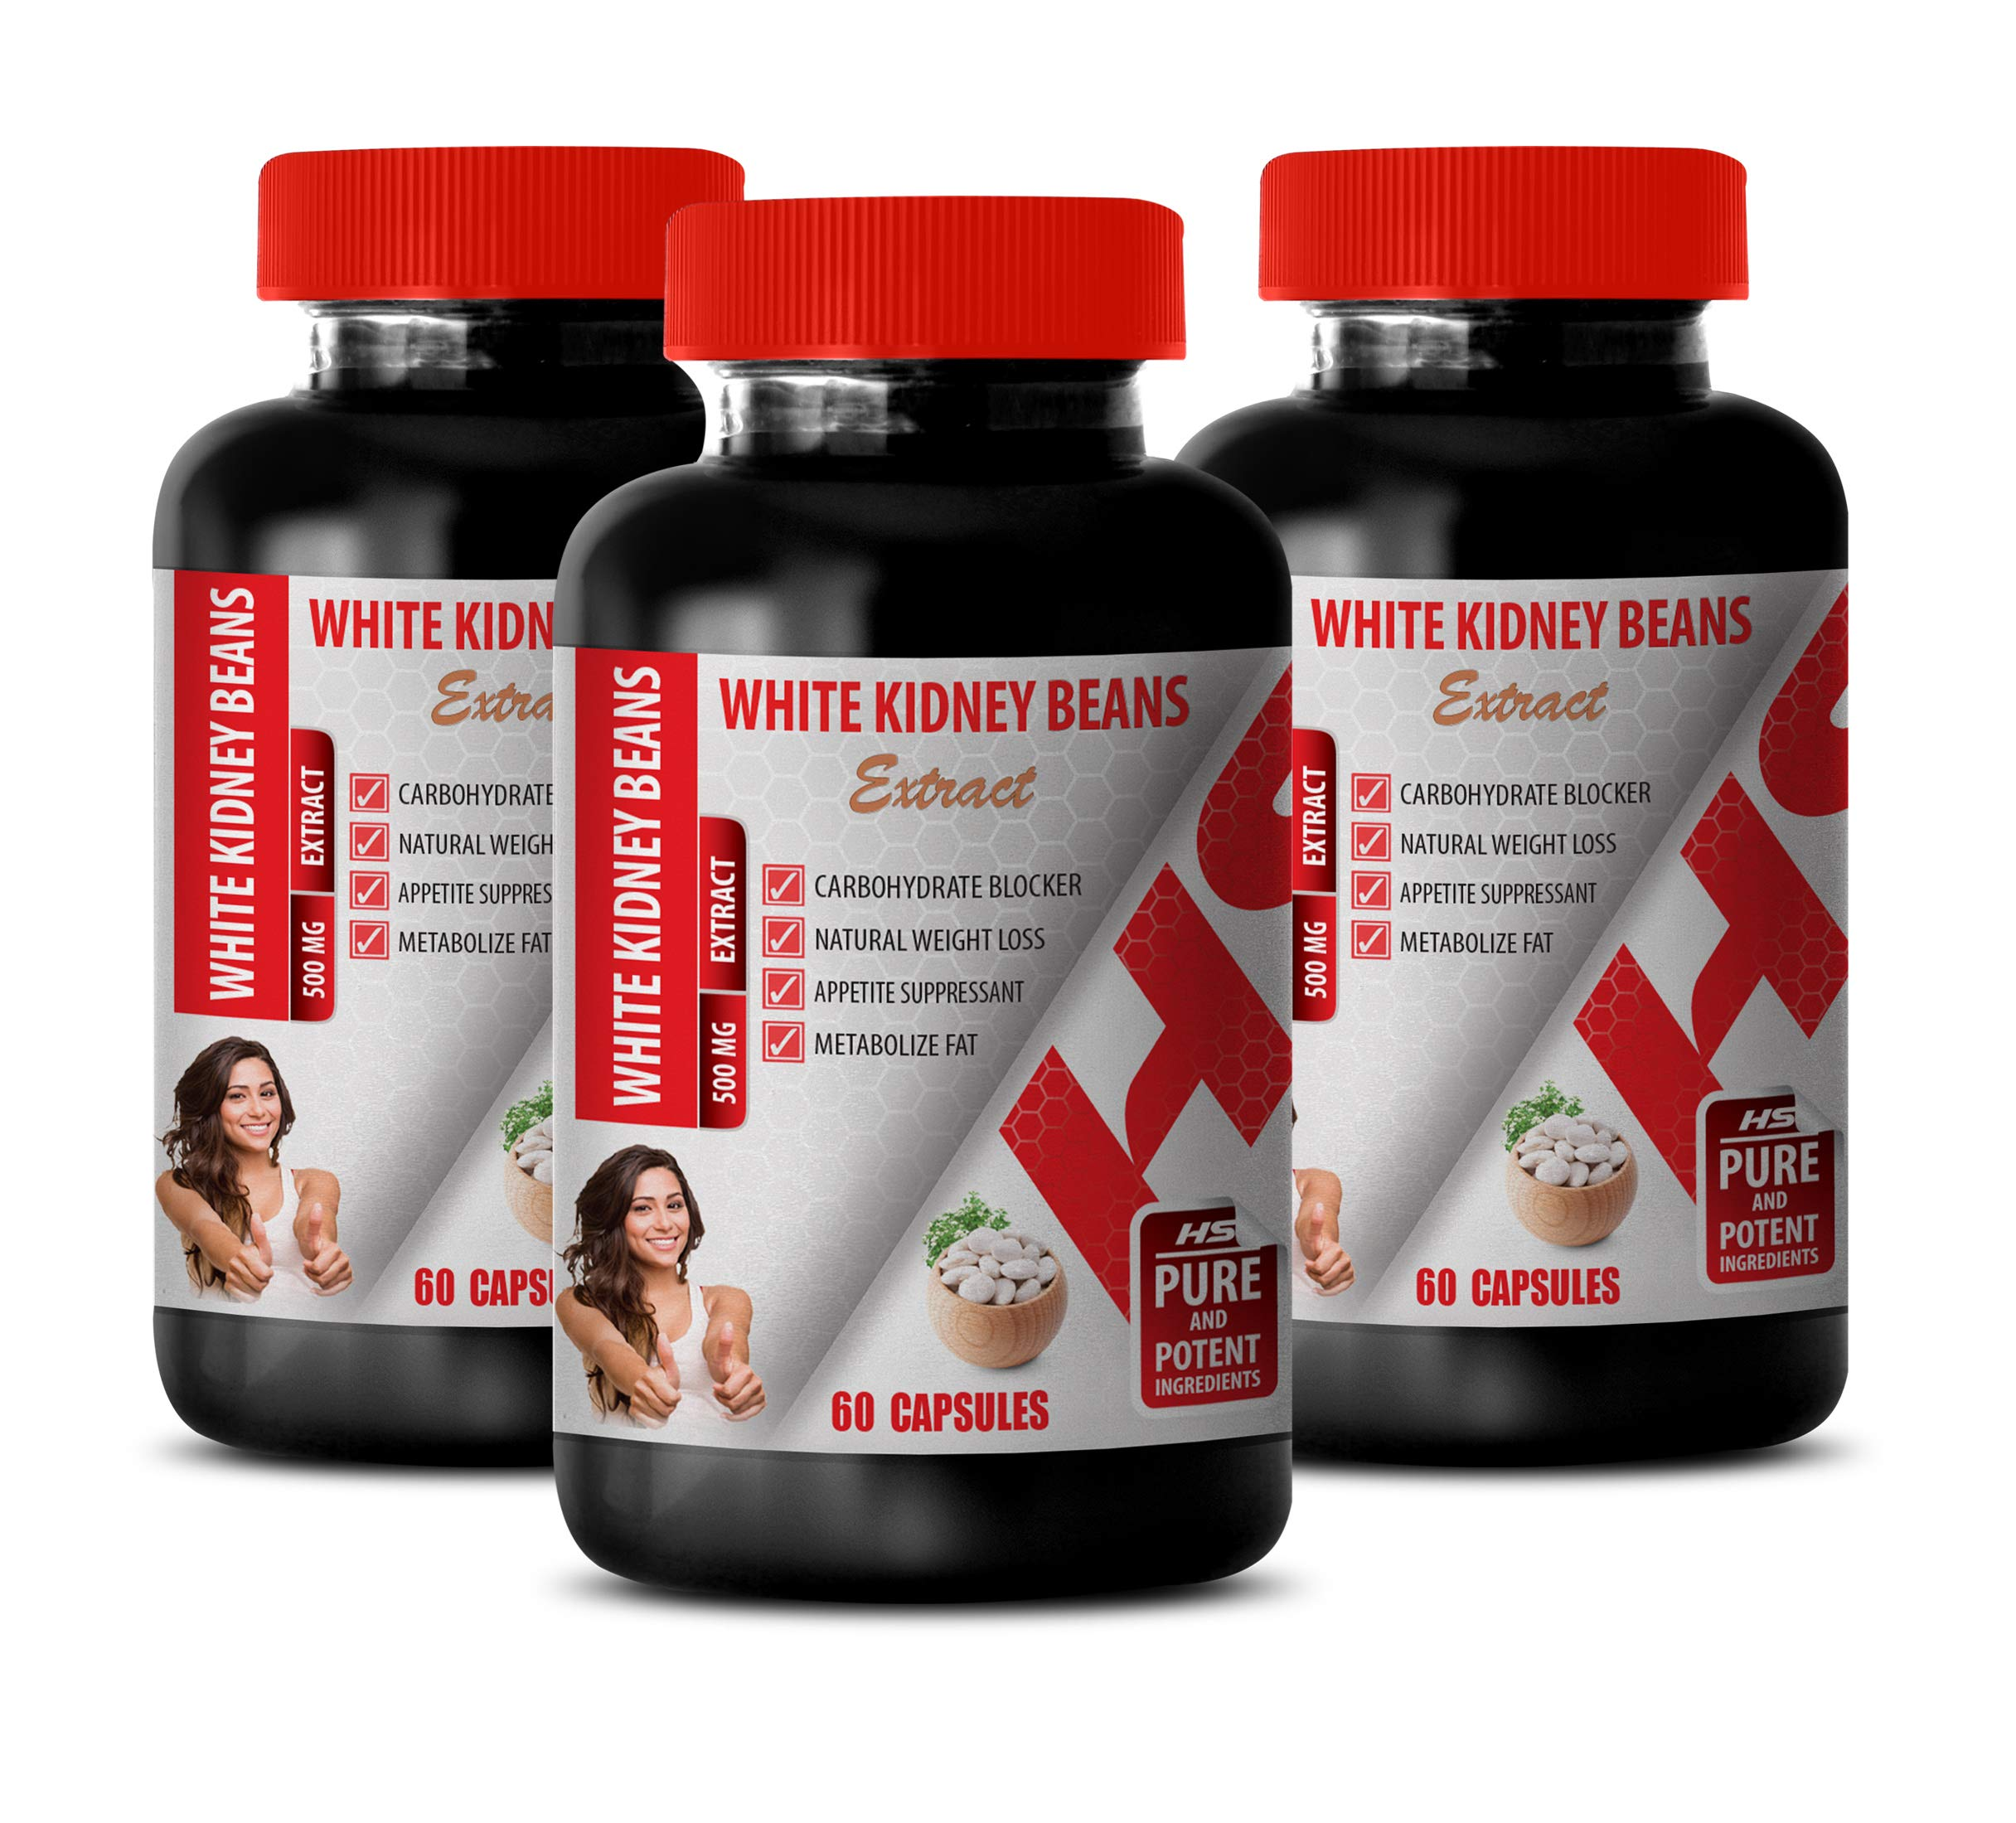 Fat Burner Metabolism Booster - White Kidney Beans 500MG Extract - Weight Loss Natural Vitamins - 3 Bottles (180 Capsules) by Healthy Supplements LLC (Image #1)